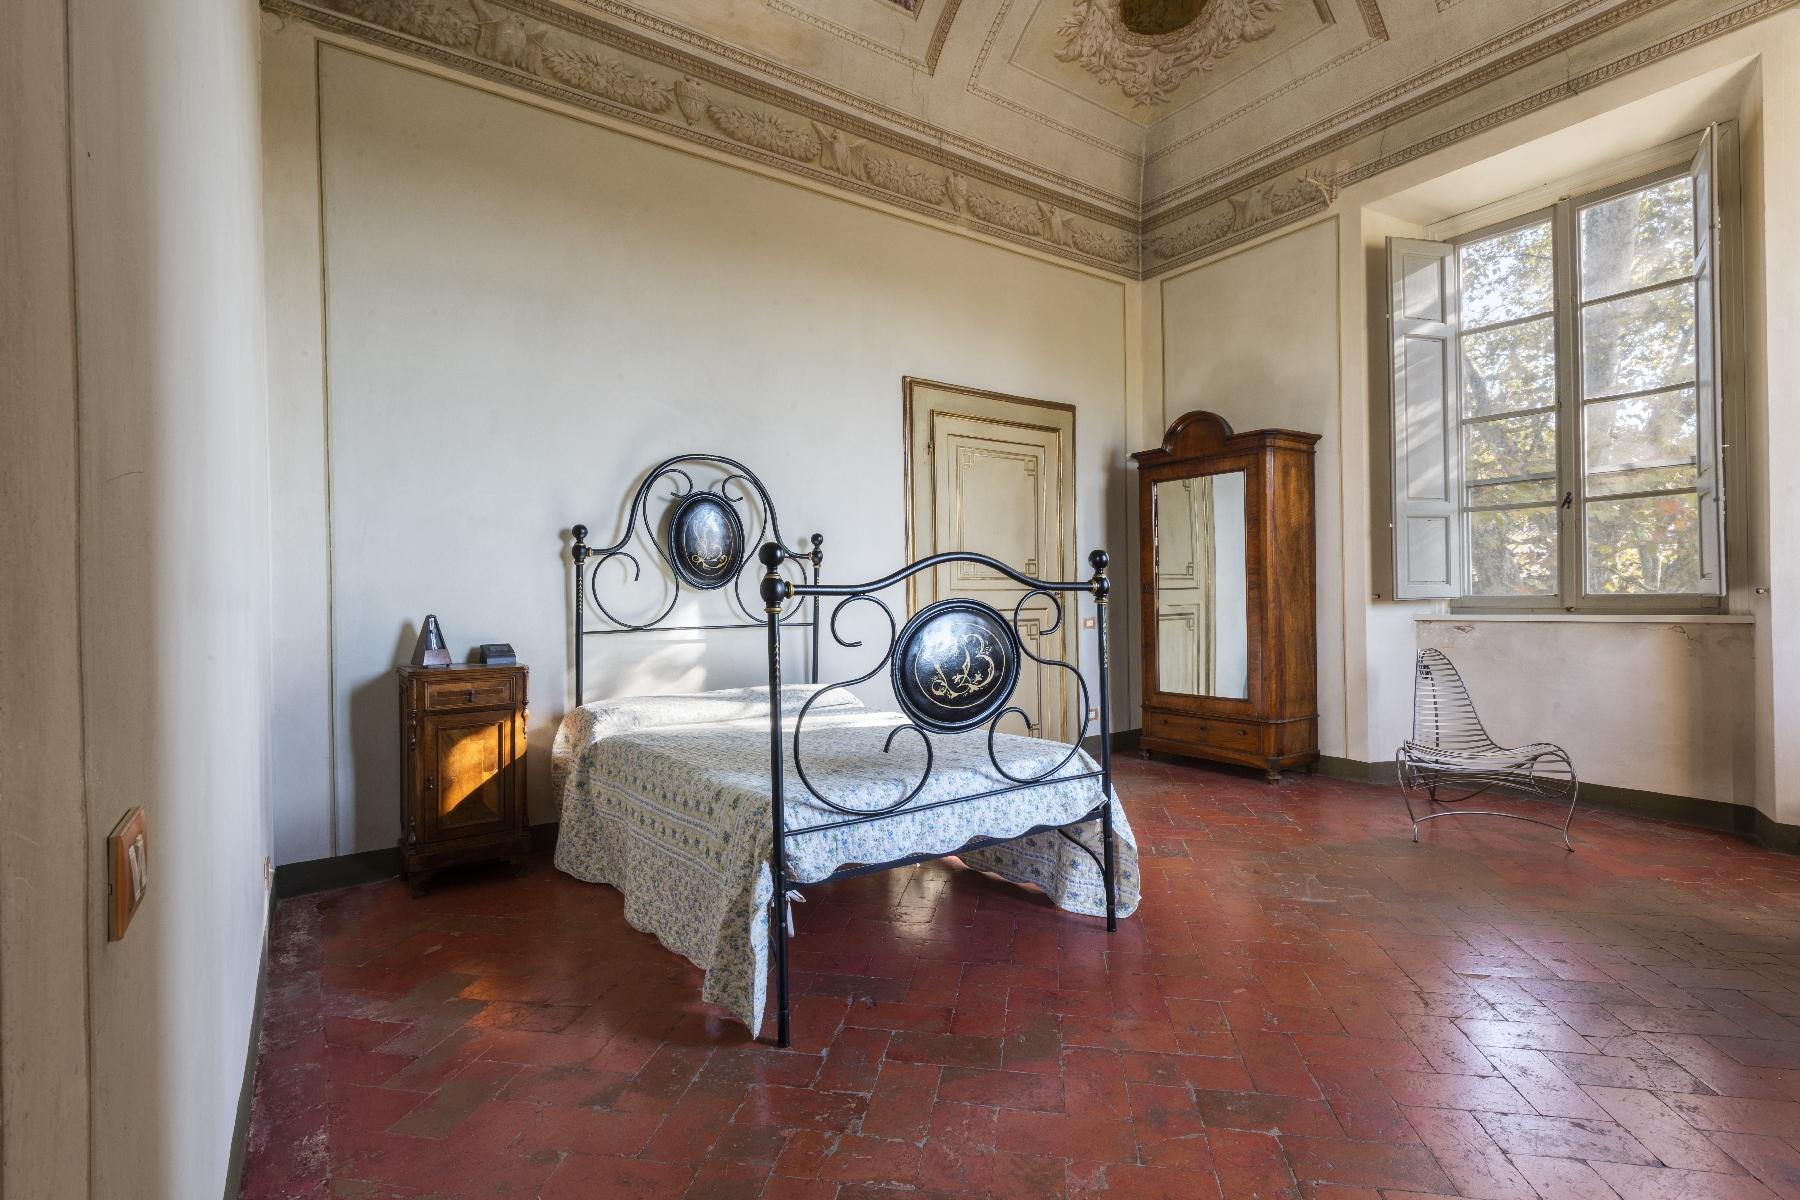 Stunning 18th century villa in the heart of Tuscany - 13